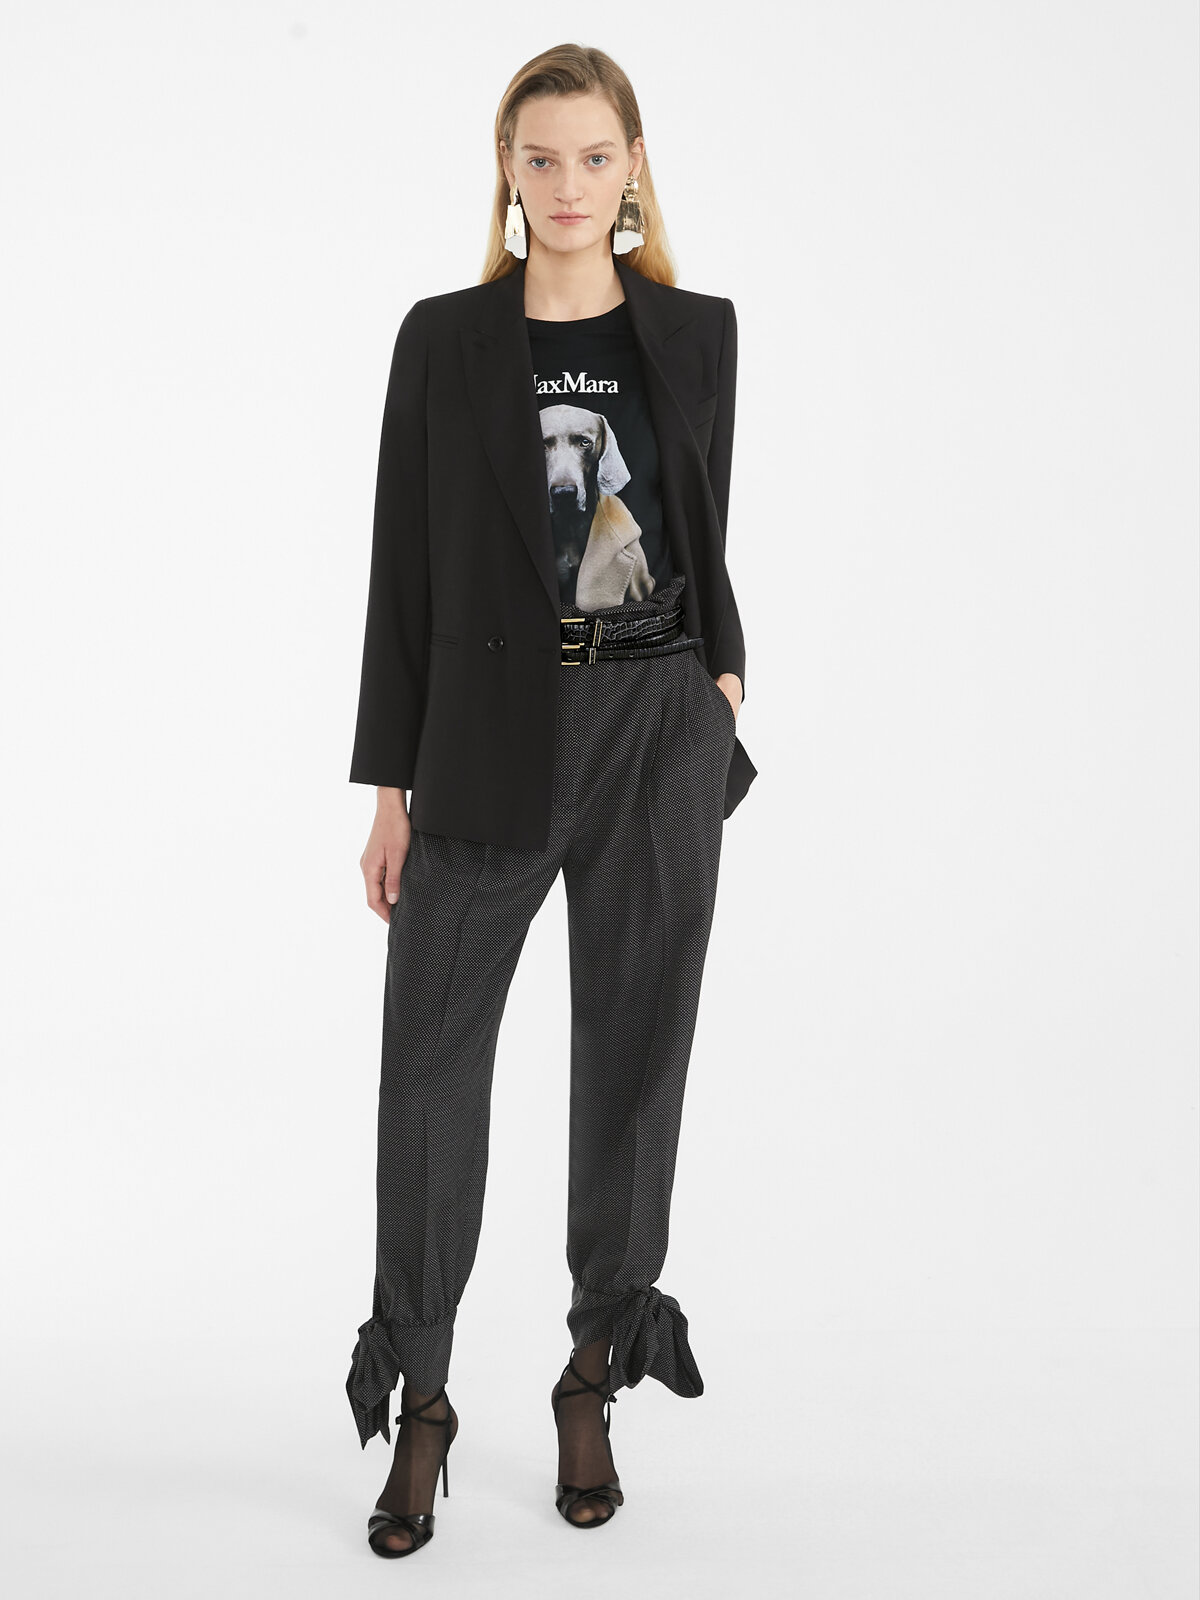 Silk Crêpe De Chine Trousers - Max Mara